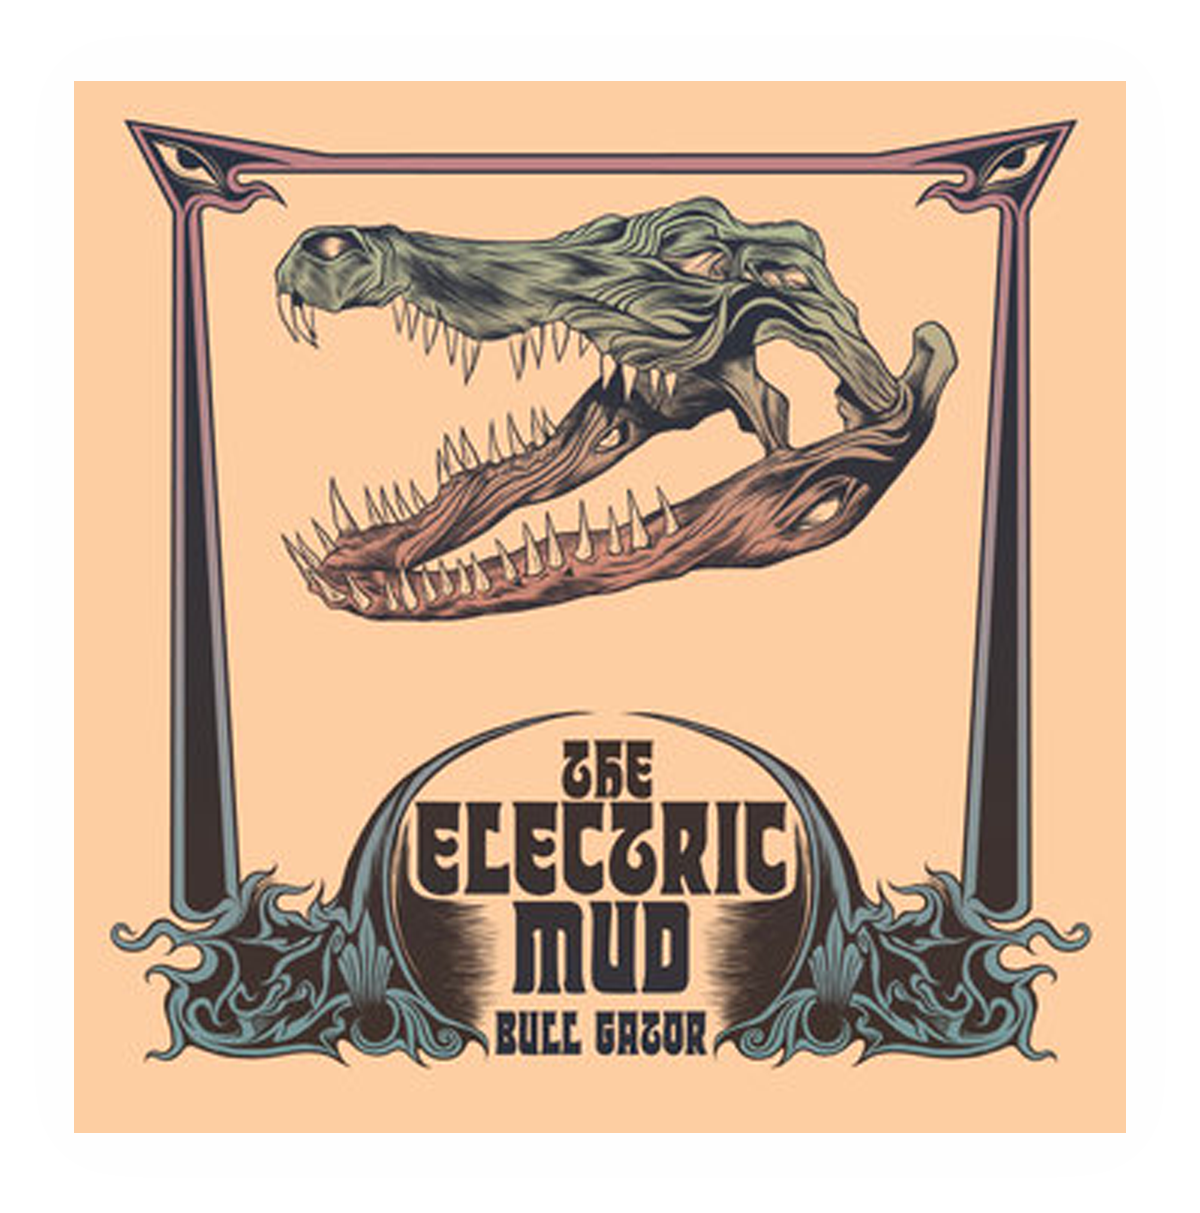 The Electric Mud Bull Gator